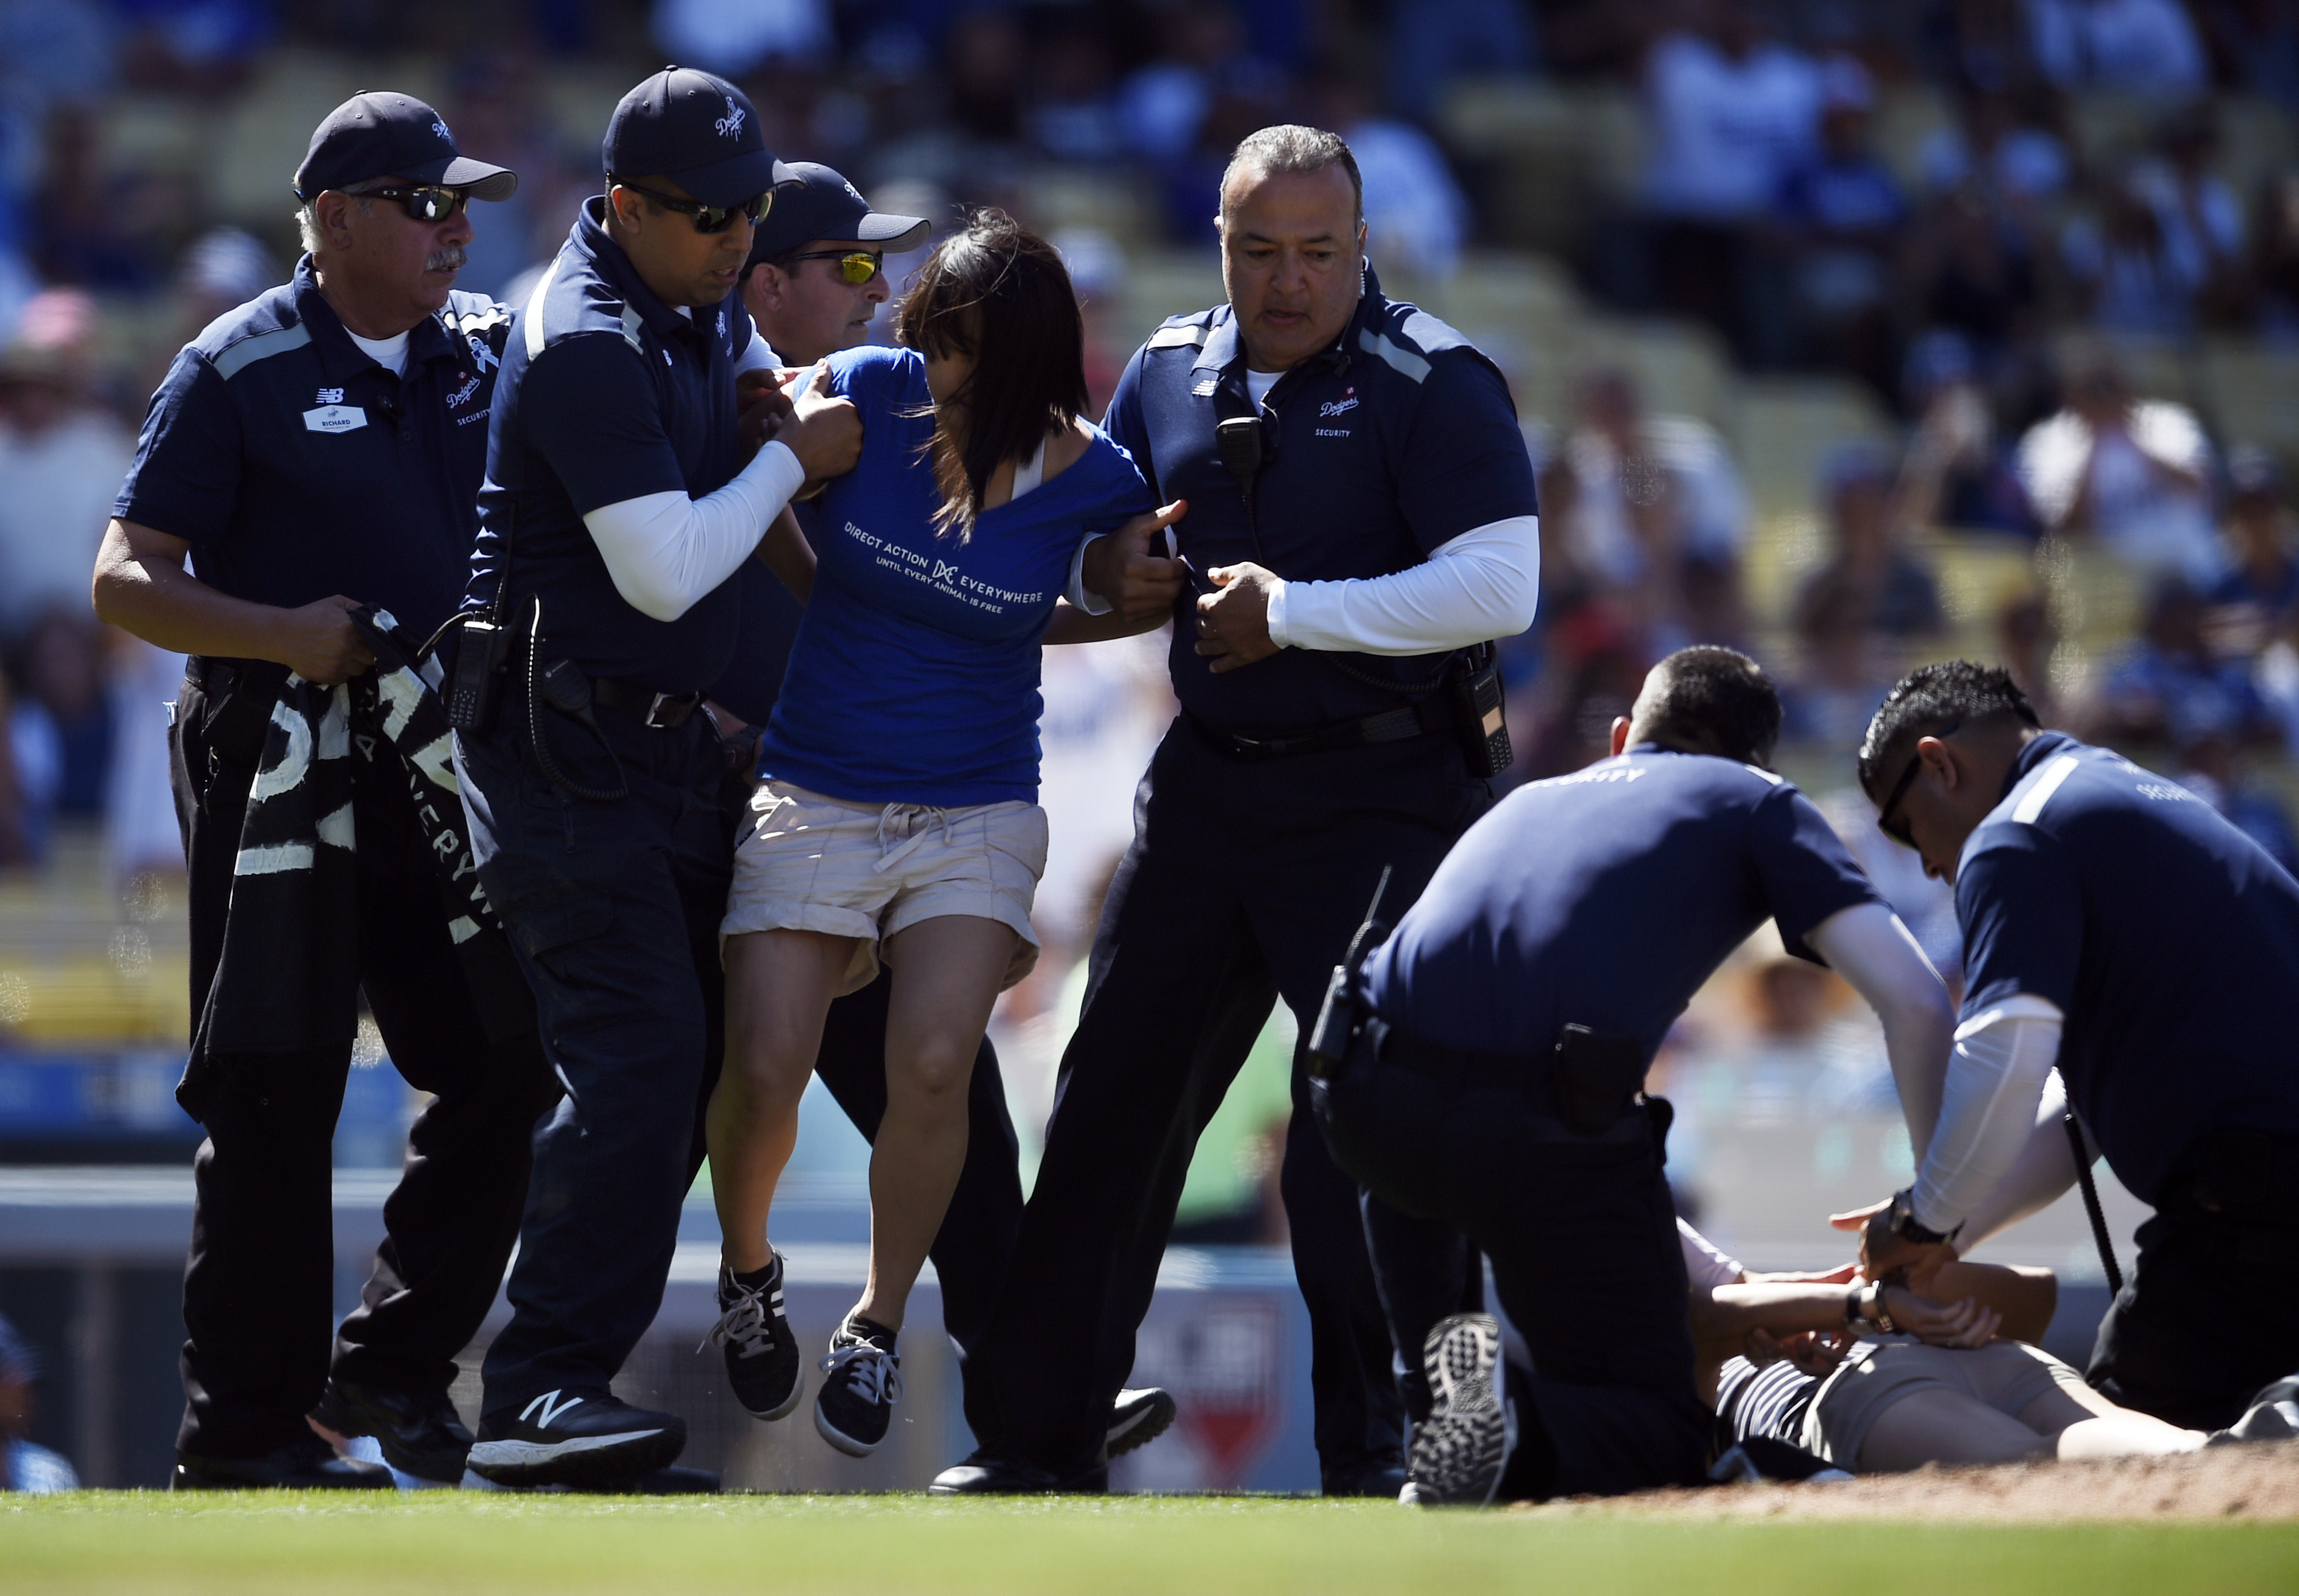 Protesters are taken off the field by security personnel during the ninth inning of a baseball game between the Los Angeles Dodgers and the Colorado Rockies in Los Angeles, Sunday, July 3, 2016. (AP Photo/Kelvin Kuo)